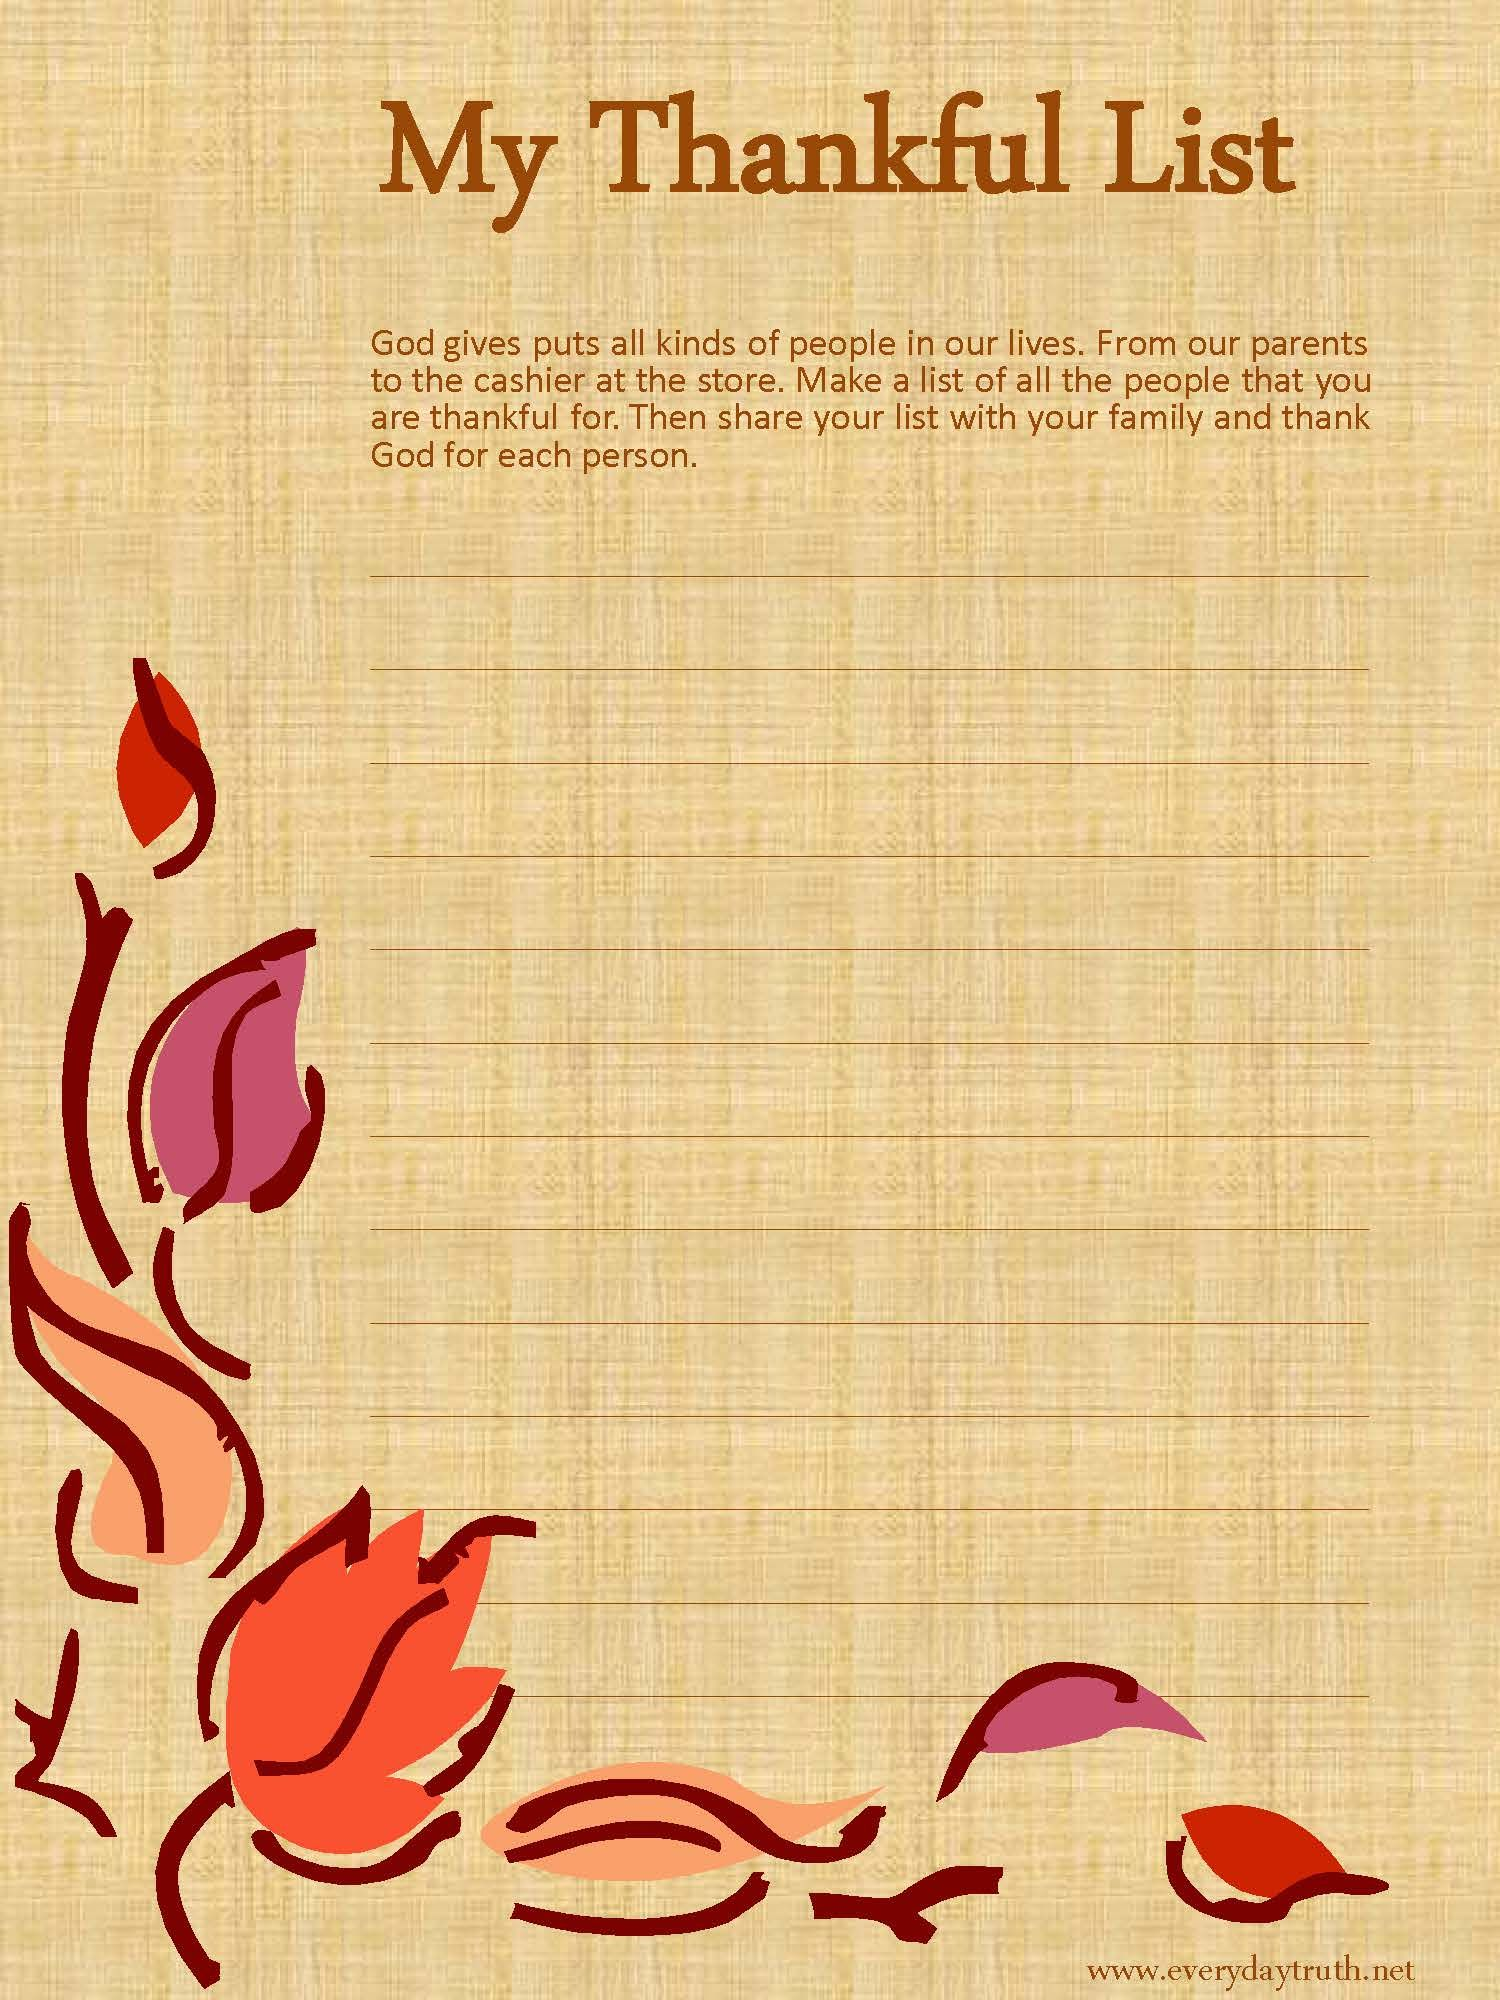 It's just a picture of Playful Printable Thanksgiving Devotions